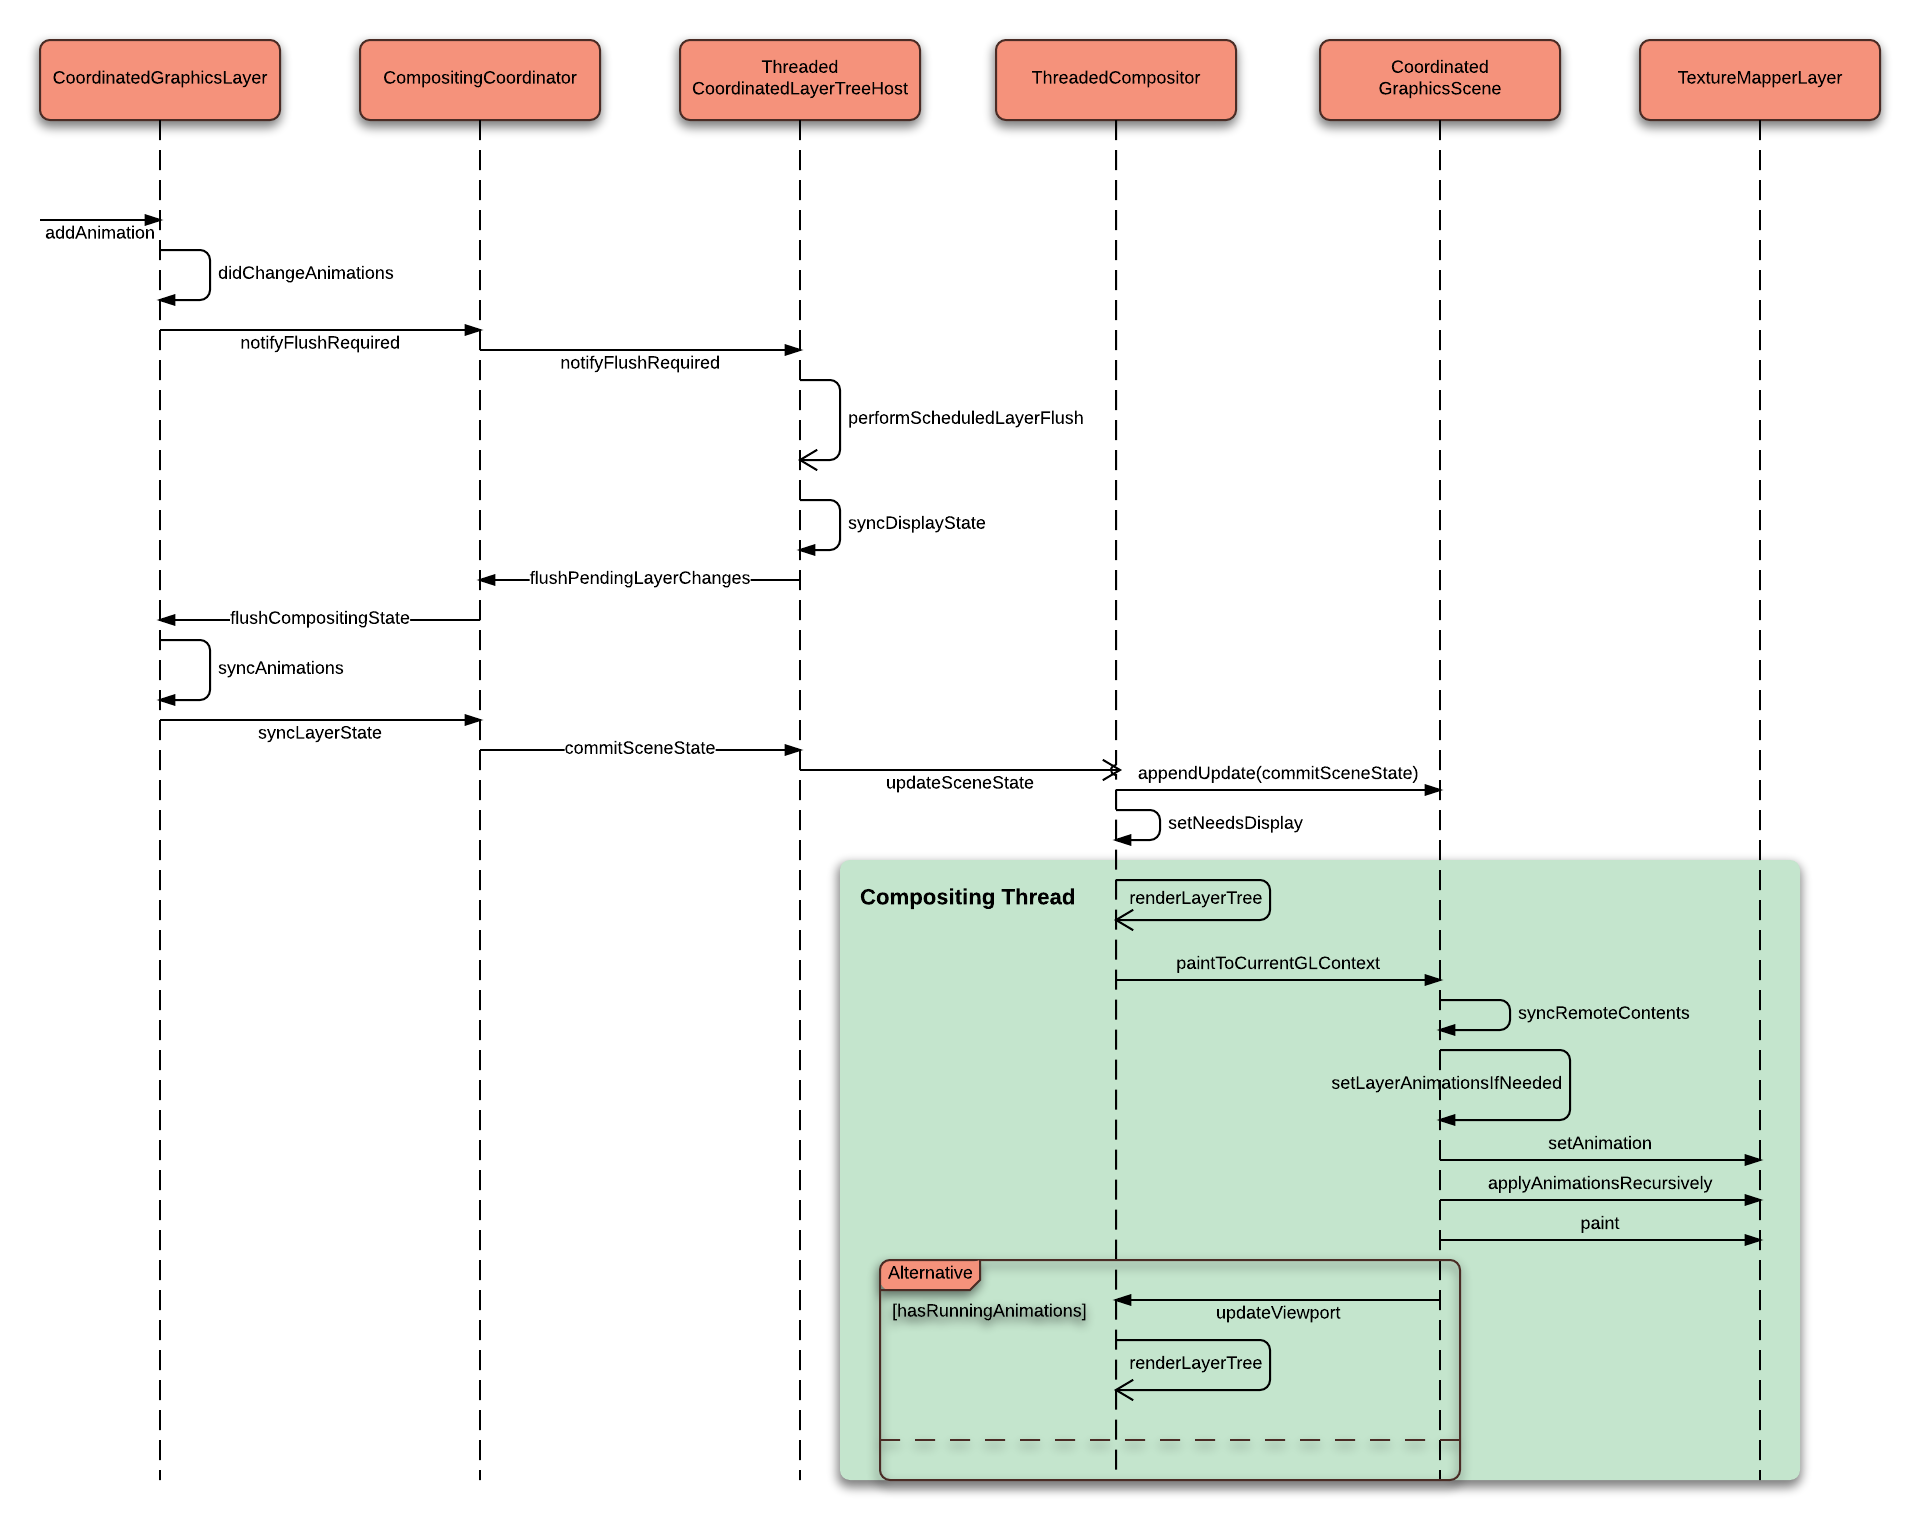 A sequence diagram of the updating animation in the Threaded Compositor